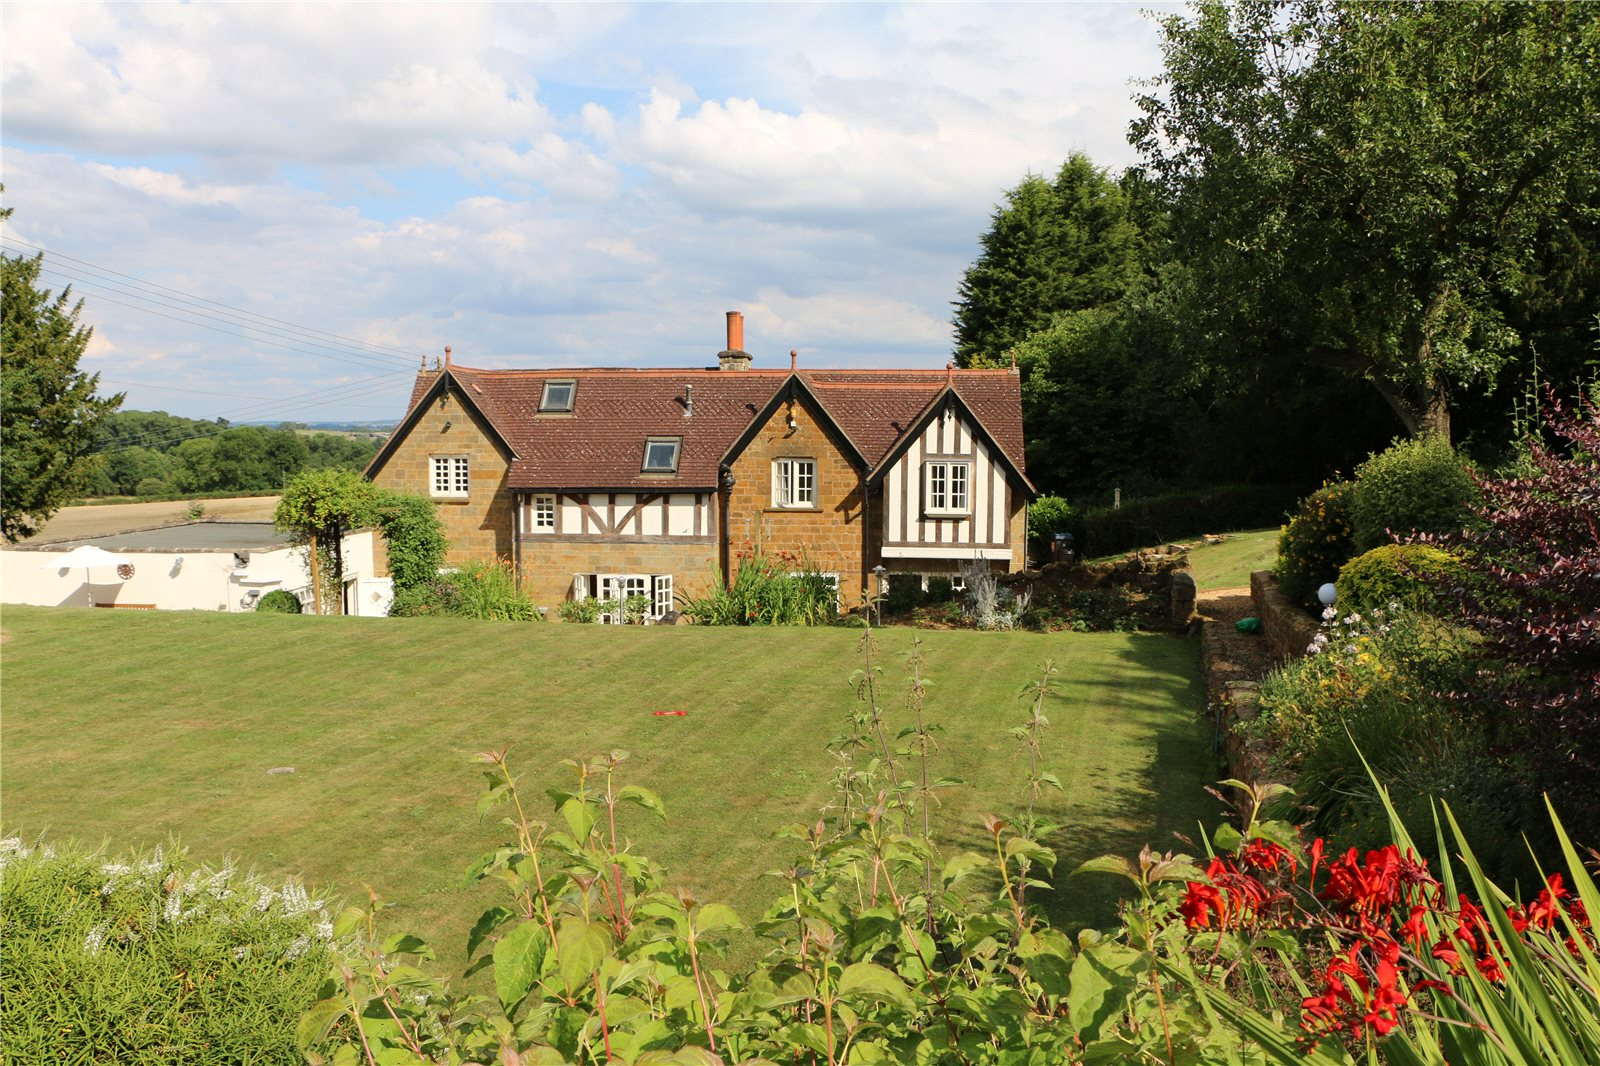 Single Family Home for Sale at Avon Dassett, Southam, Warwickshire, CV47 Southam, England